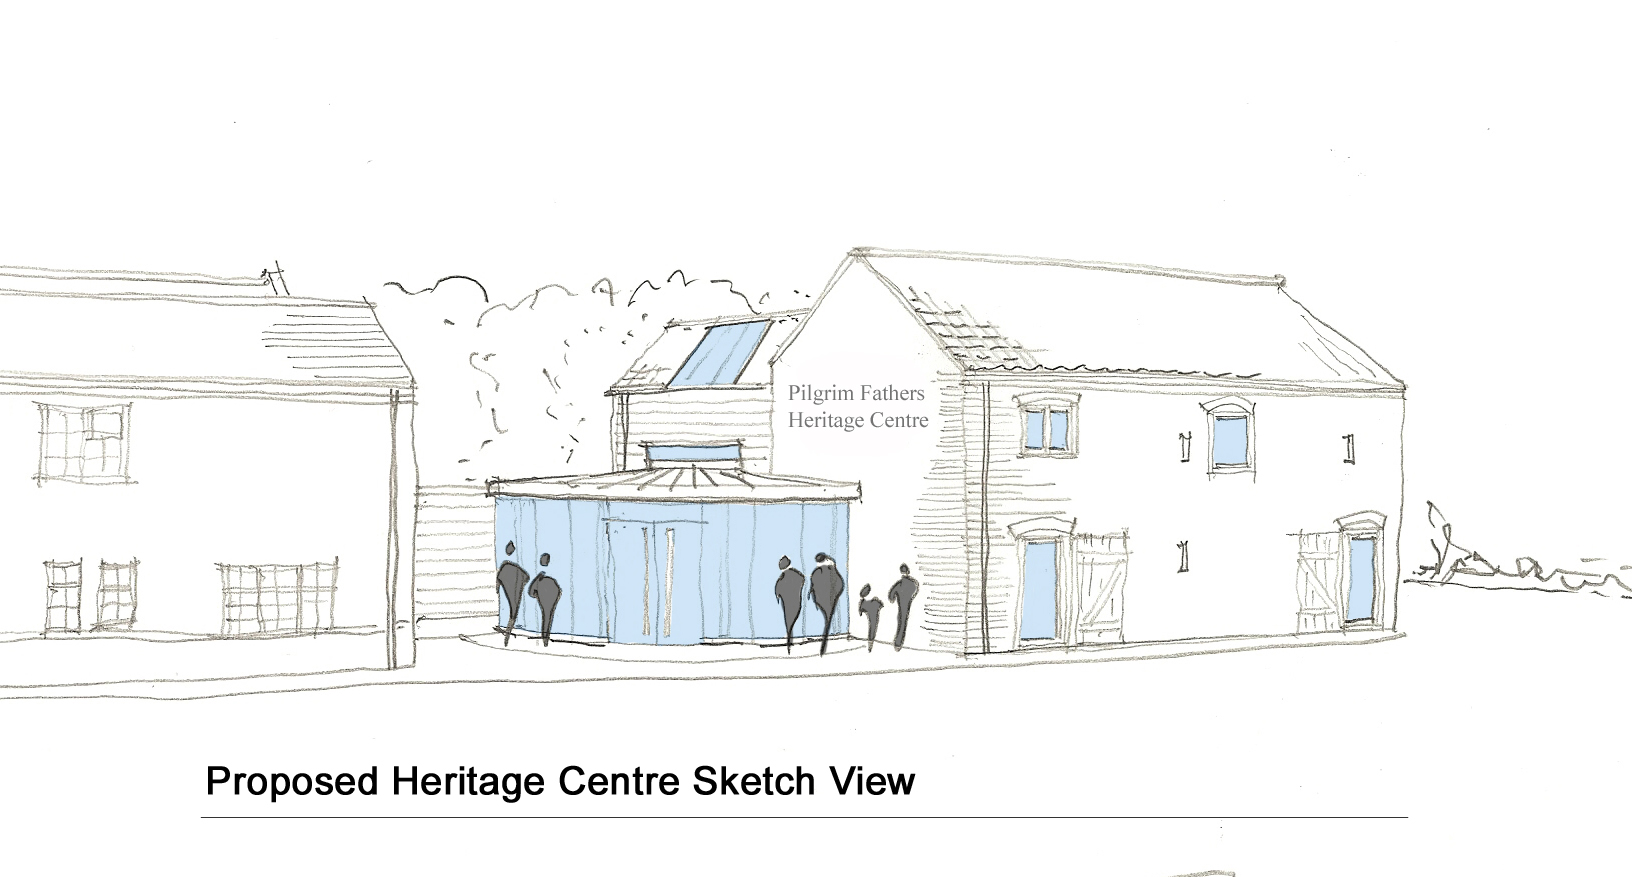 Heritage Centre Sketch View